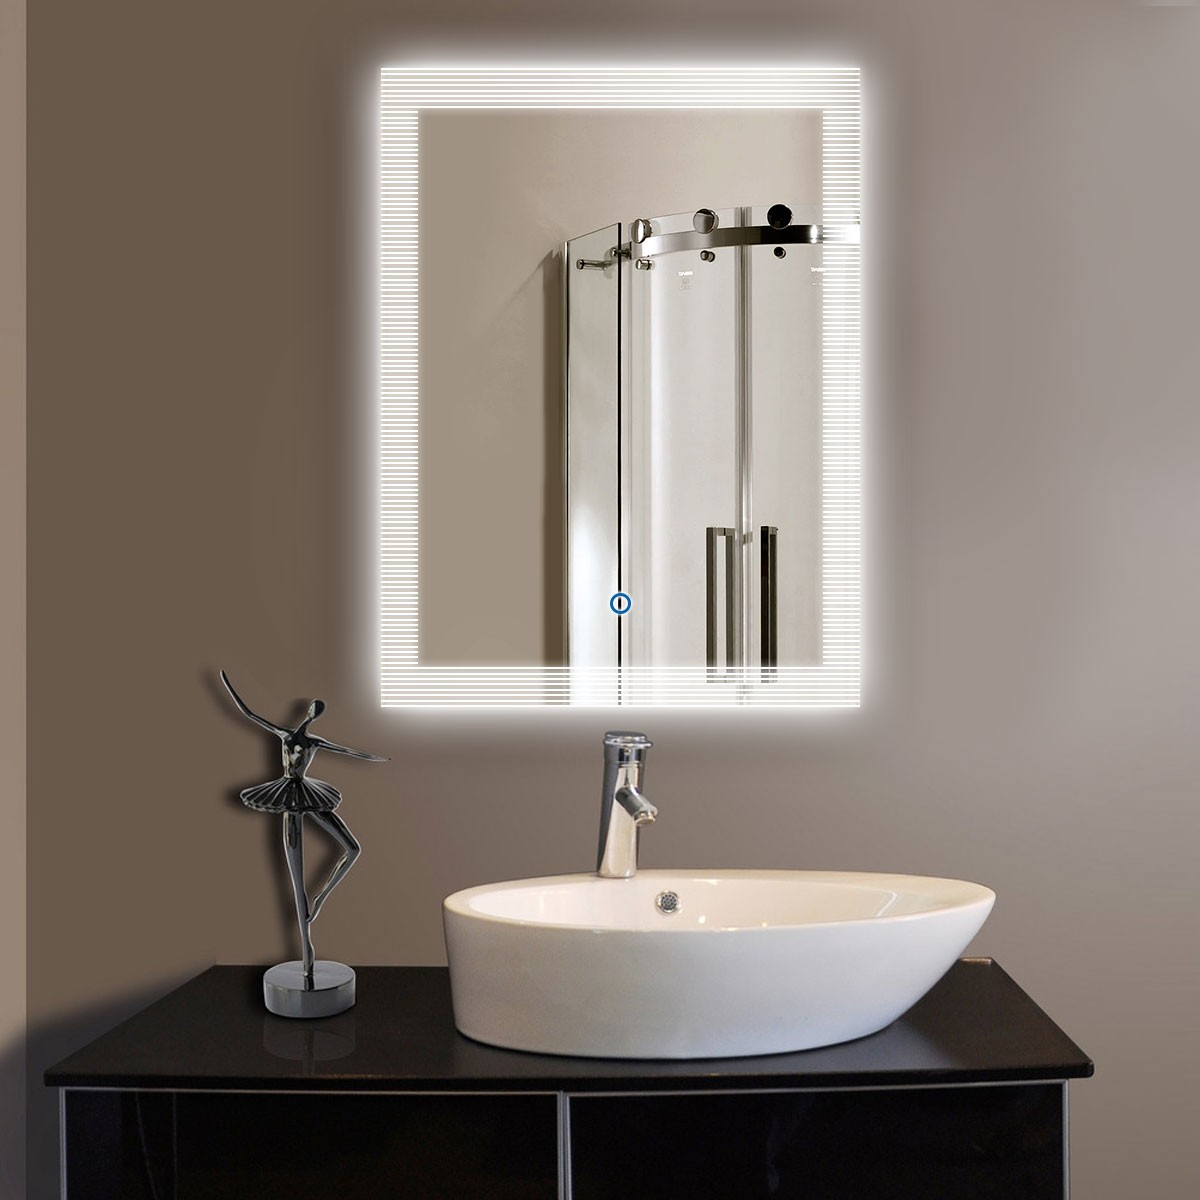 24 x 32 in vertical led bathroom mirror touch button dk 10826